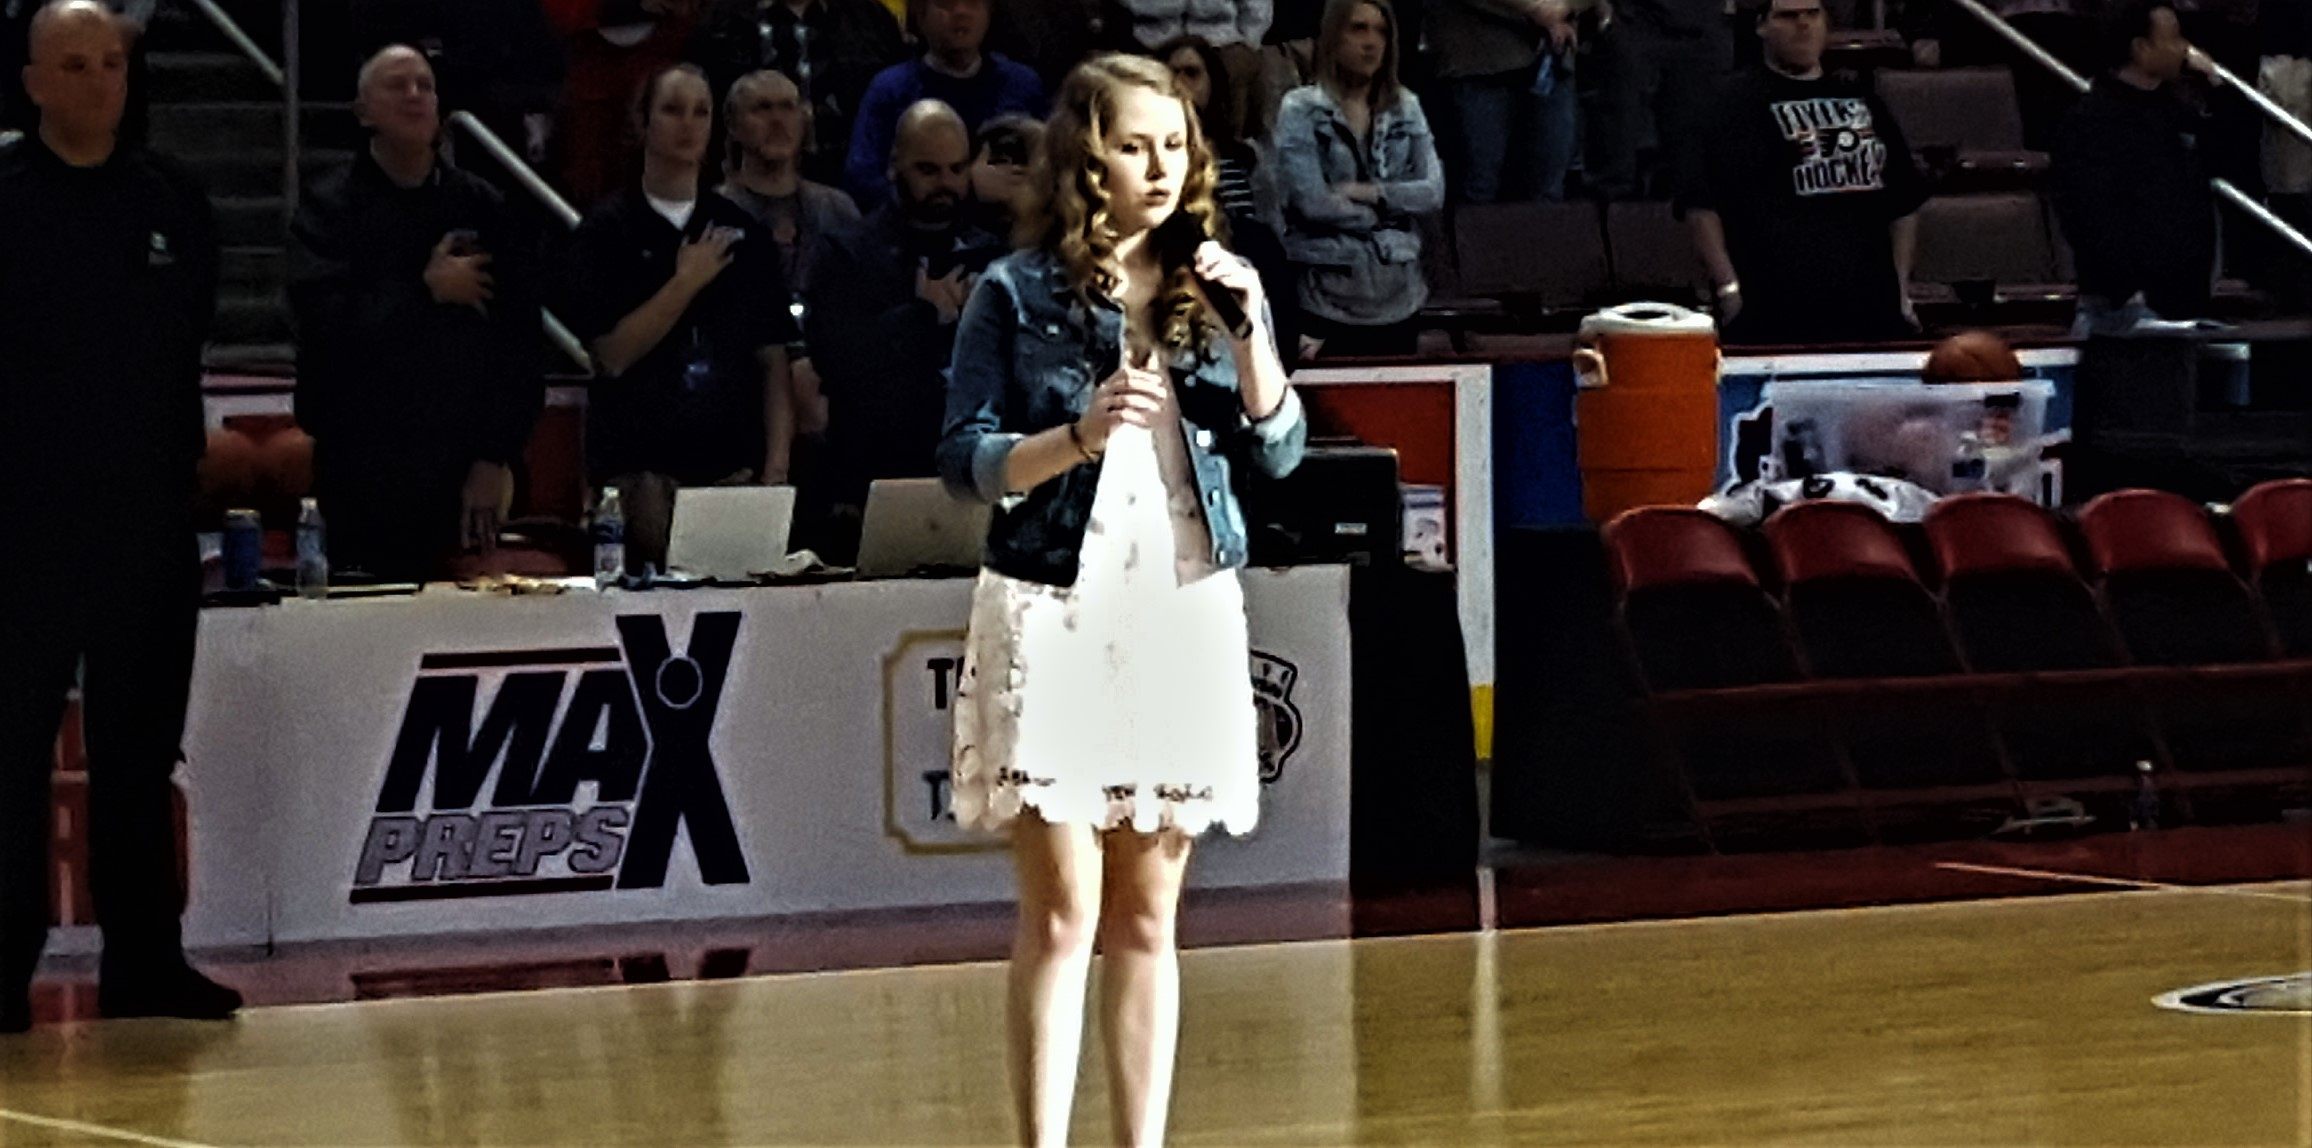 Brockway's Faith Sings Anthem at PIAA Championships – With Video